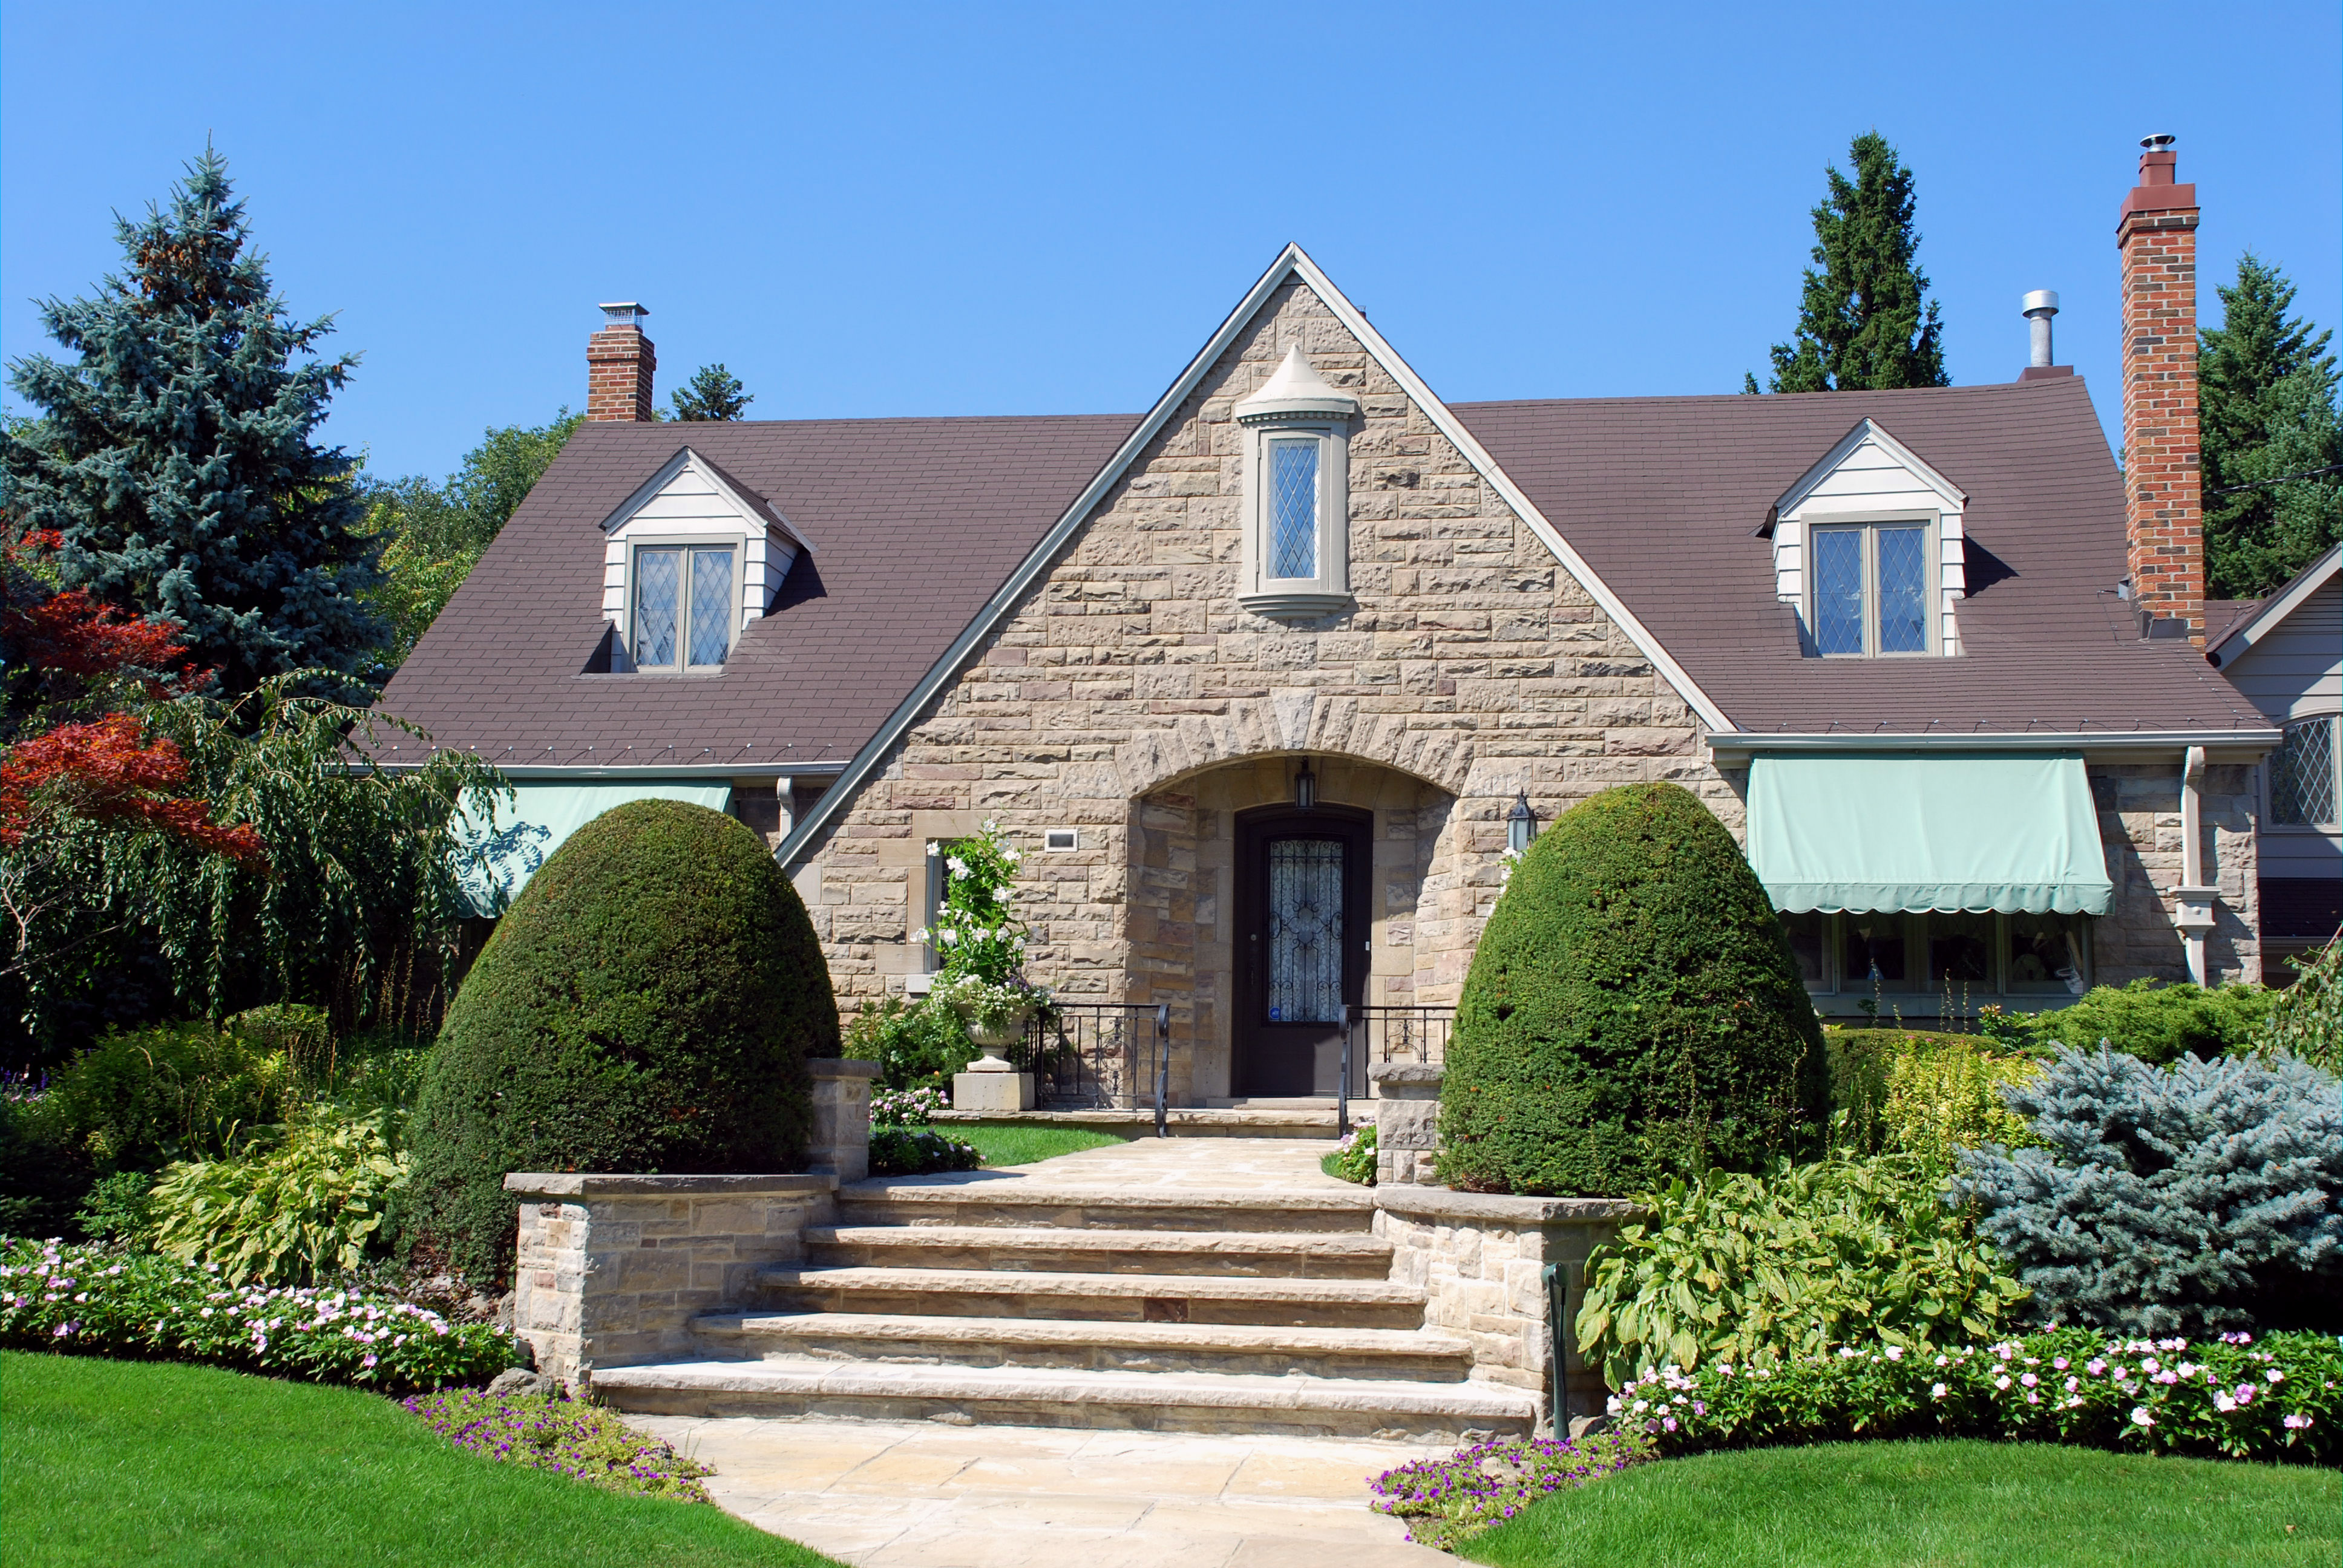 A stone house with large stone front porch, green yard, and colorful flowerbeds.